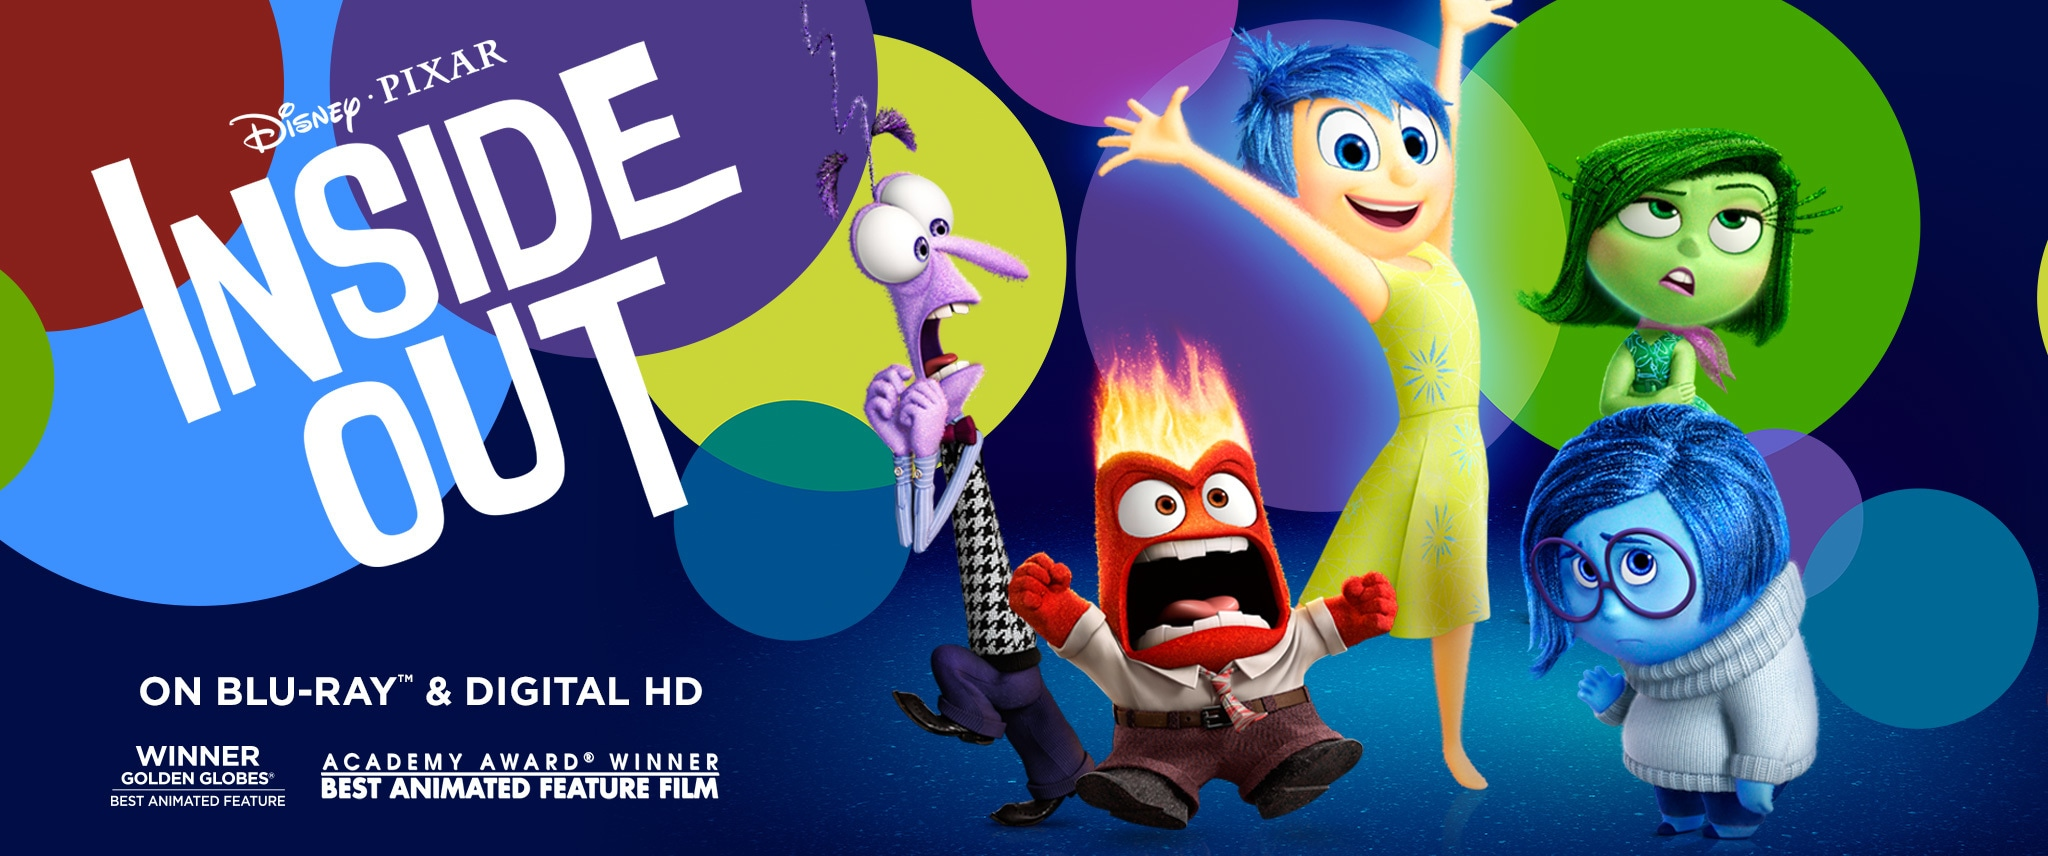 inside out 2 full movie free online